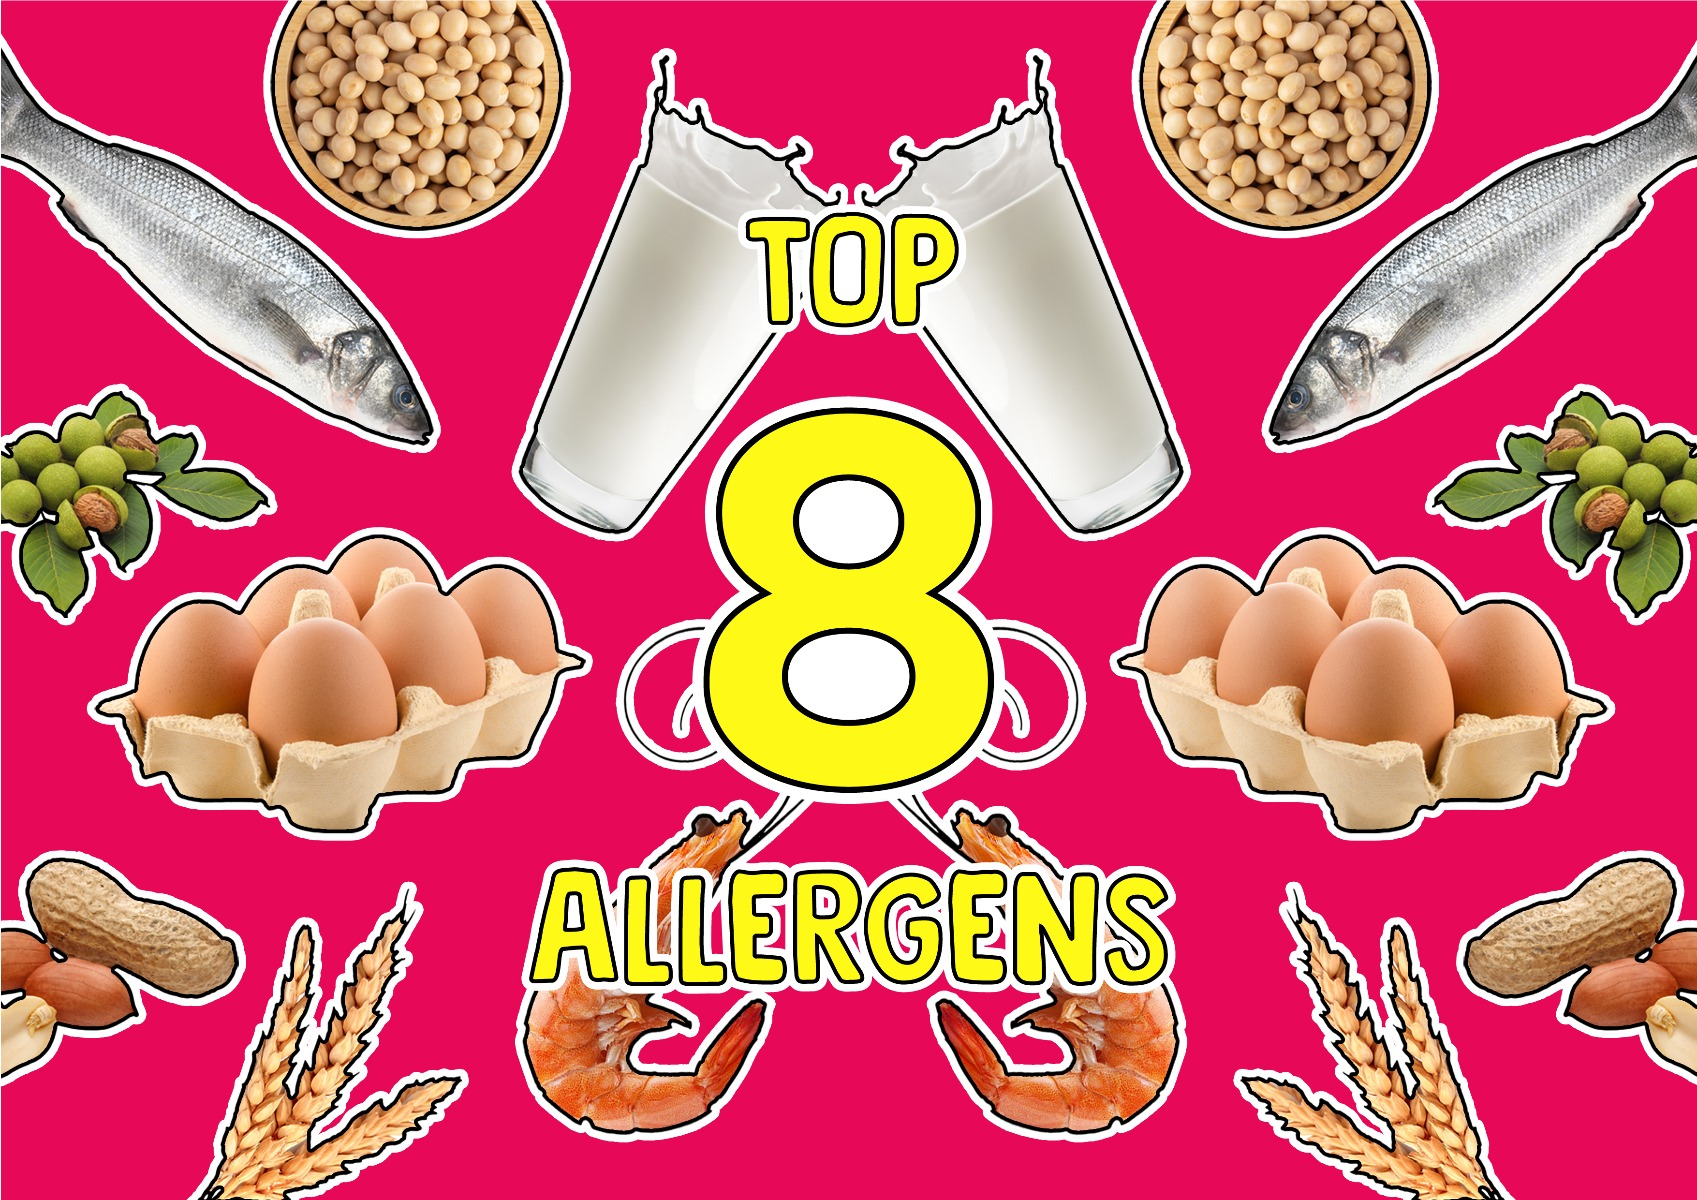 Top 8 food allergens airy, soy, egg, wheat, peanut, tree nuts, fish and shellfish on a pink background